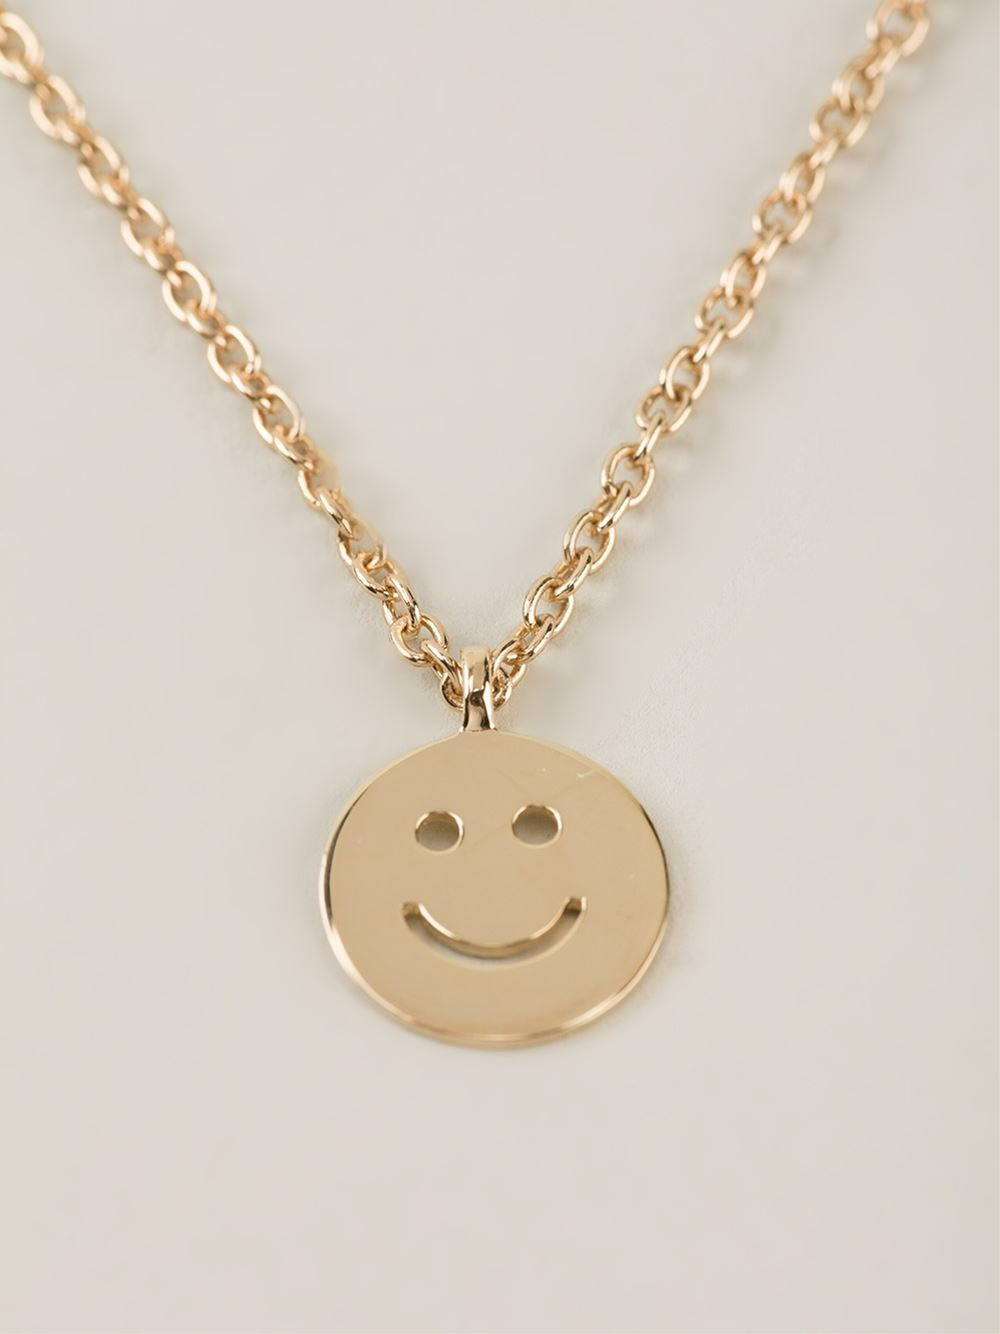 A.P.C. Smiley Face Necklace in Metallic